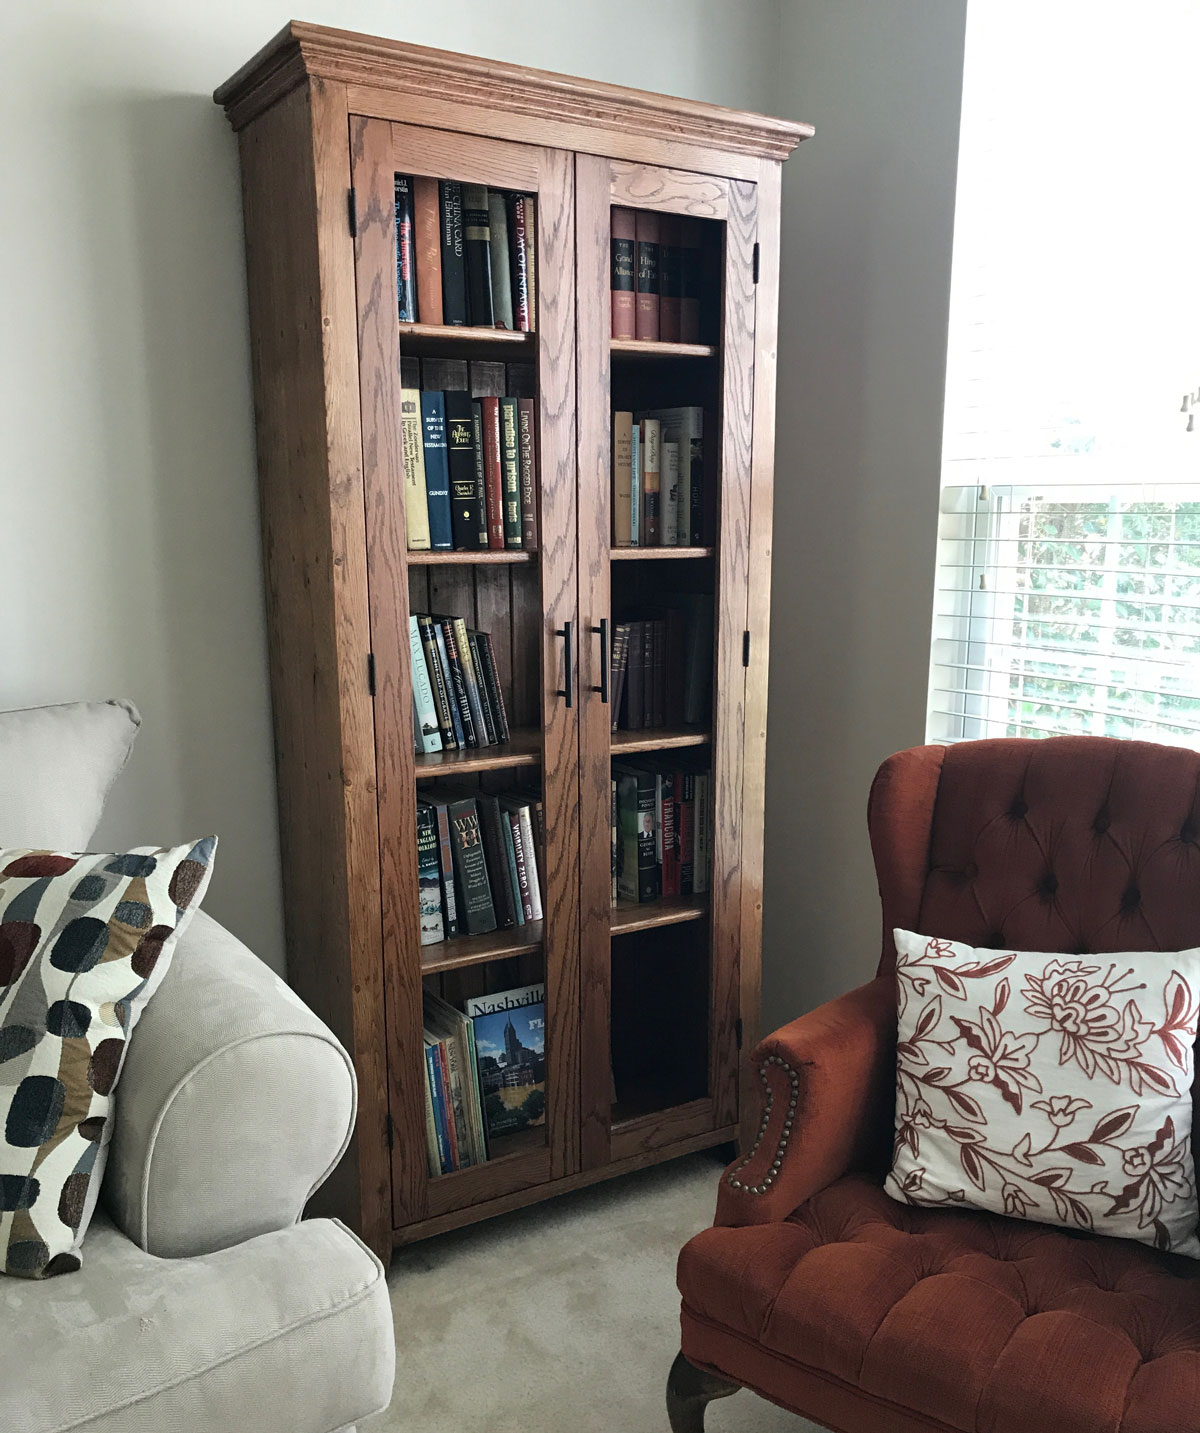 Pegged Bookshelf with glass doors